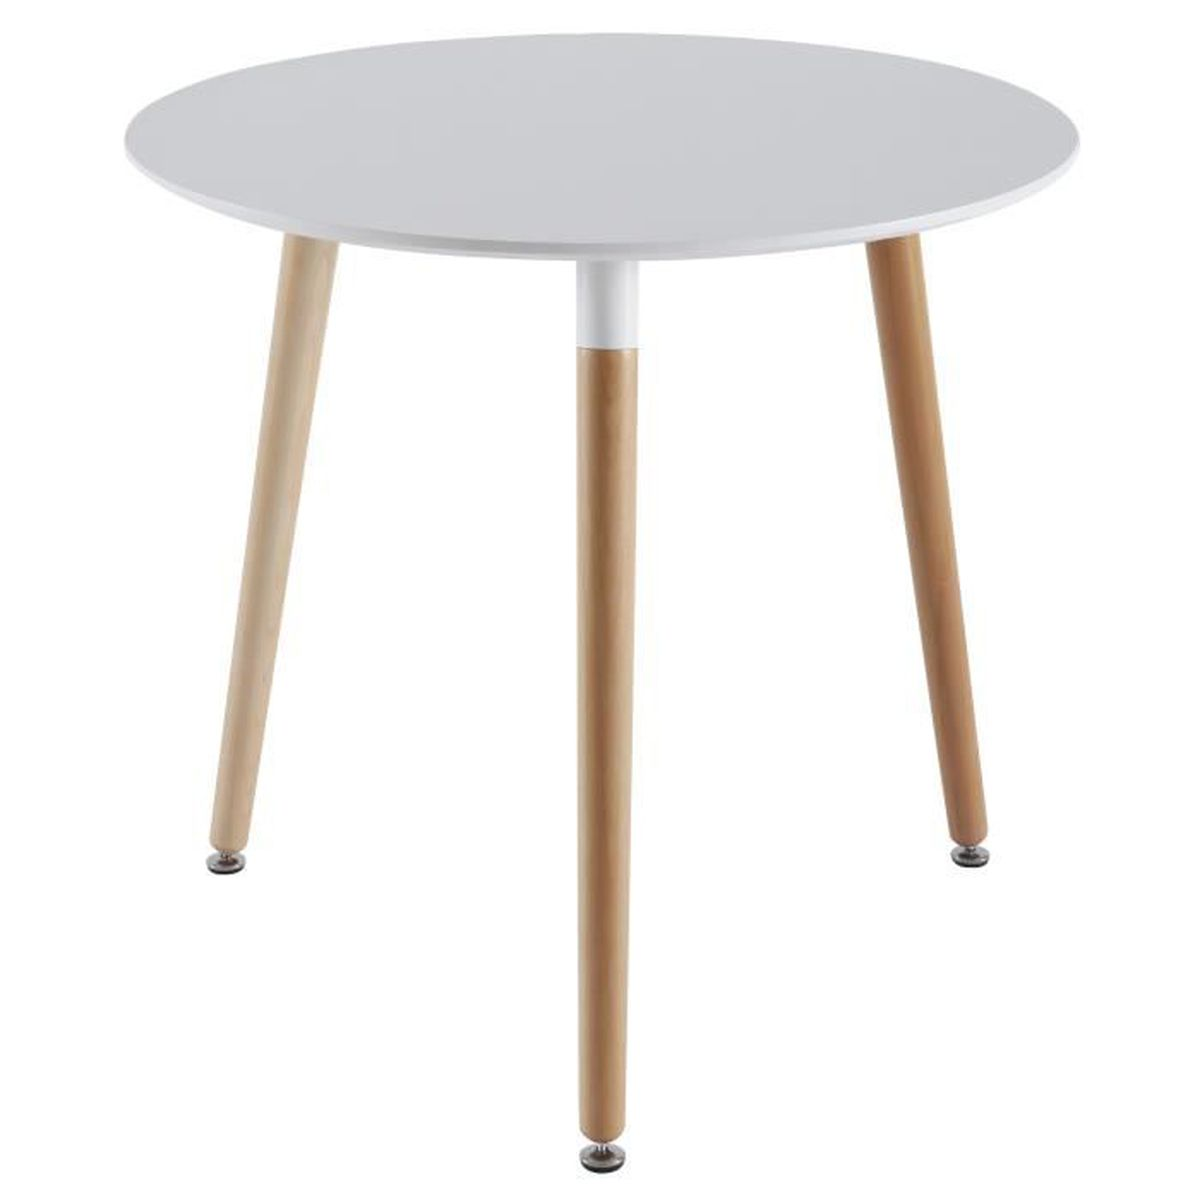 Table ronde design scandinave coloris blanc et bois for Table scandinave blanc et bois